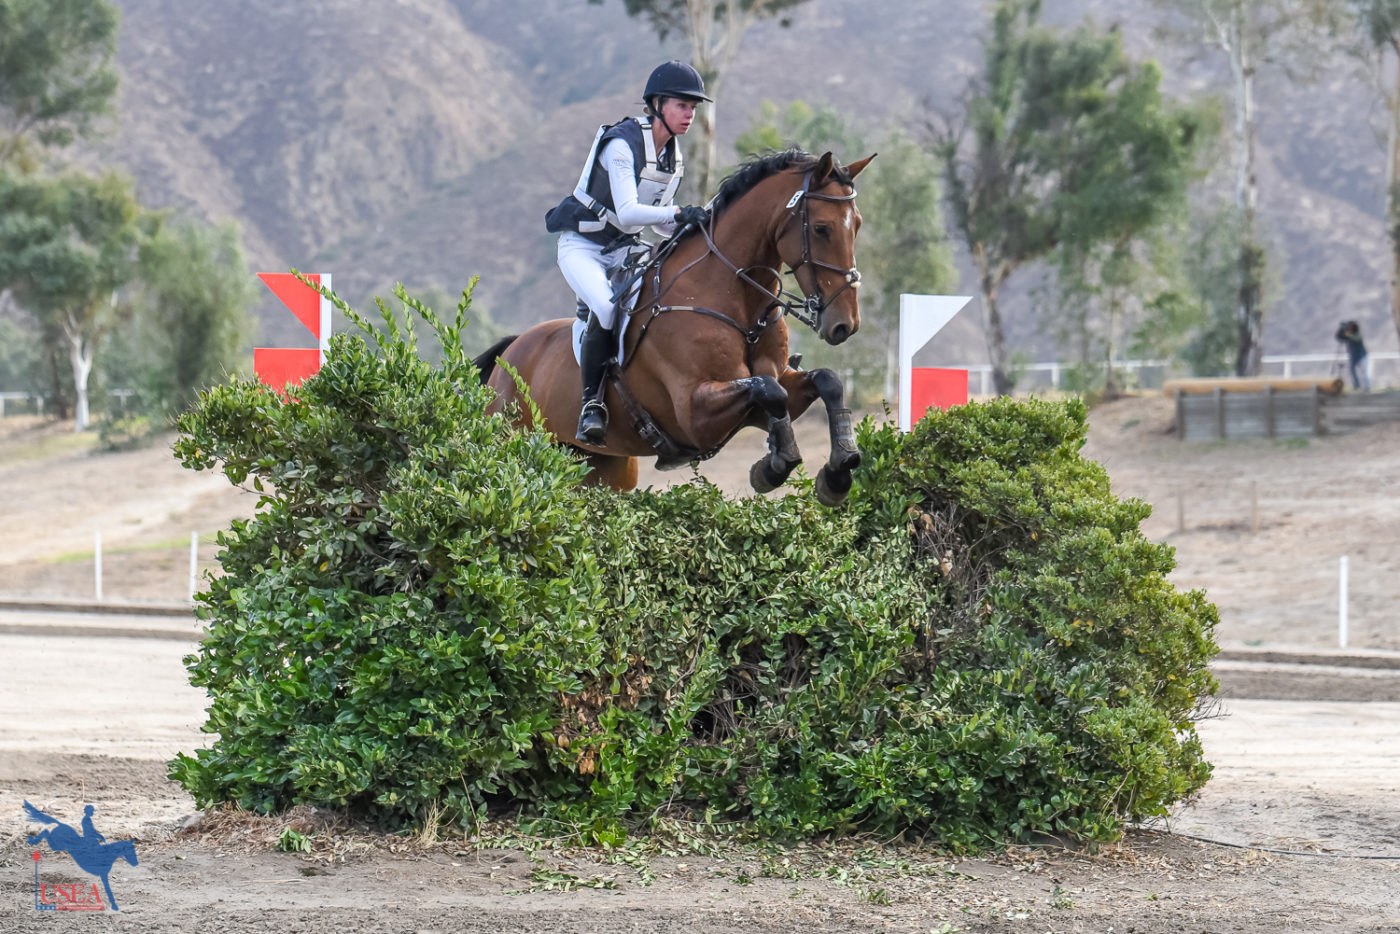 CCI3*-L 8th - Sophie Click and Quidproquo - 41.9